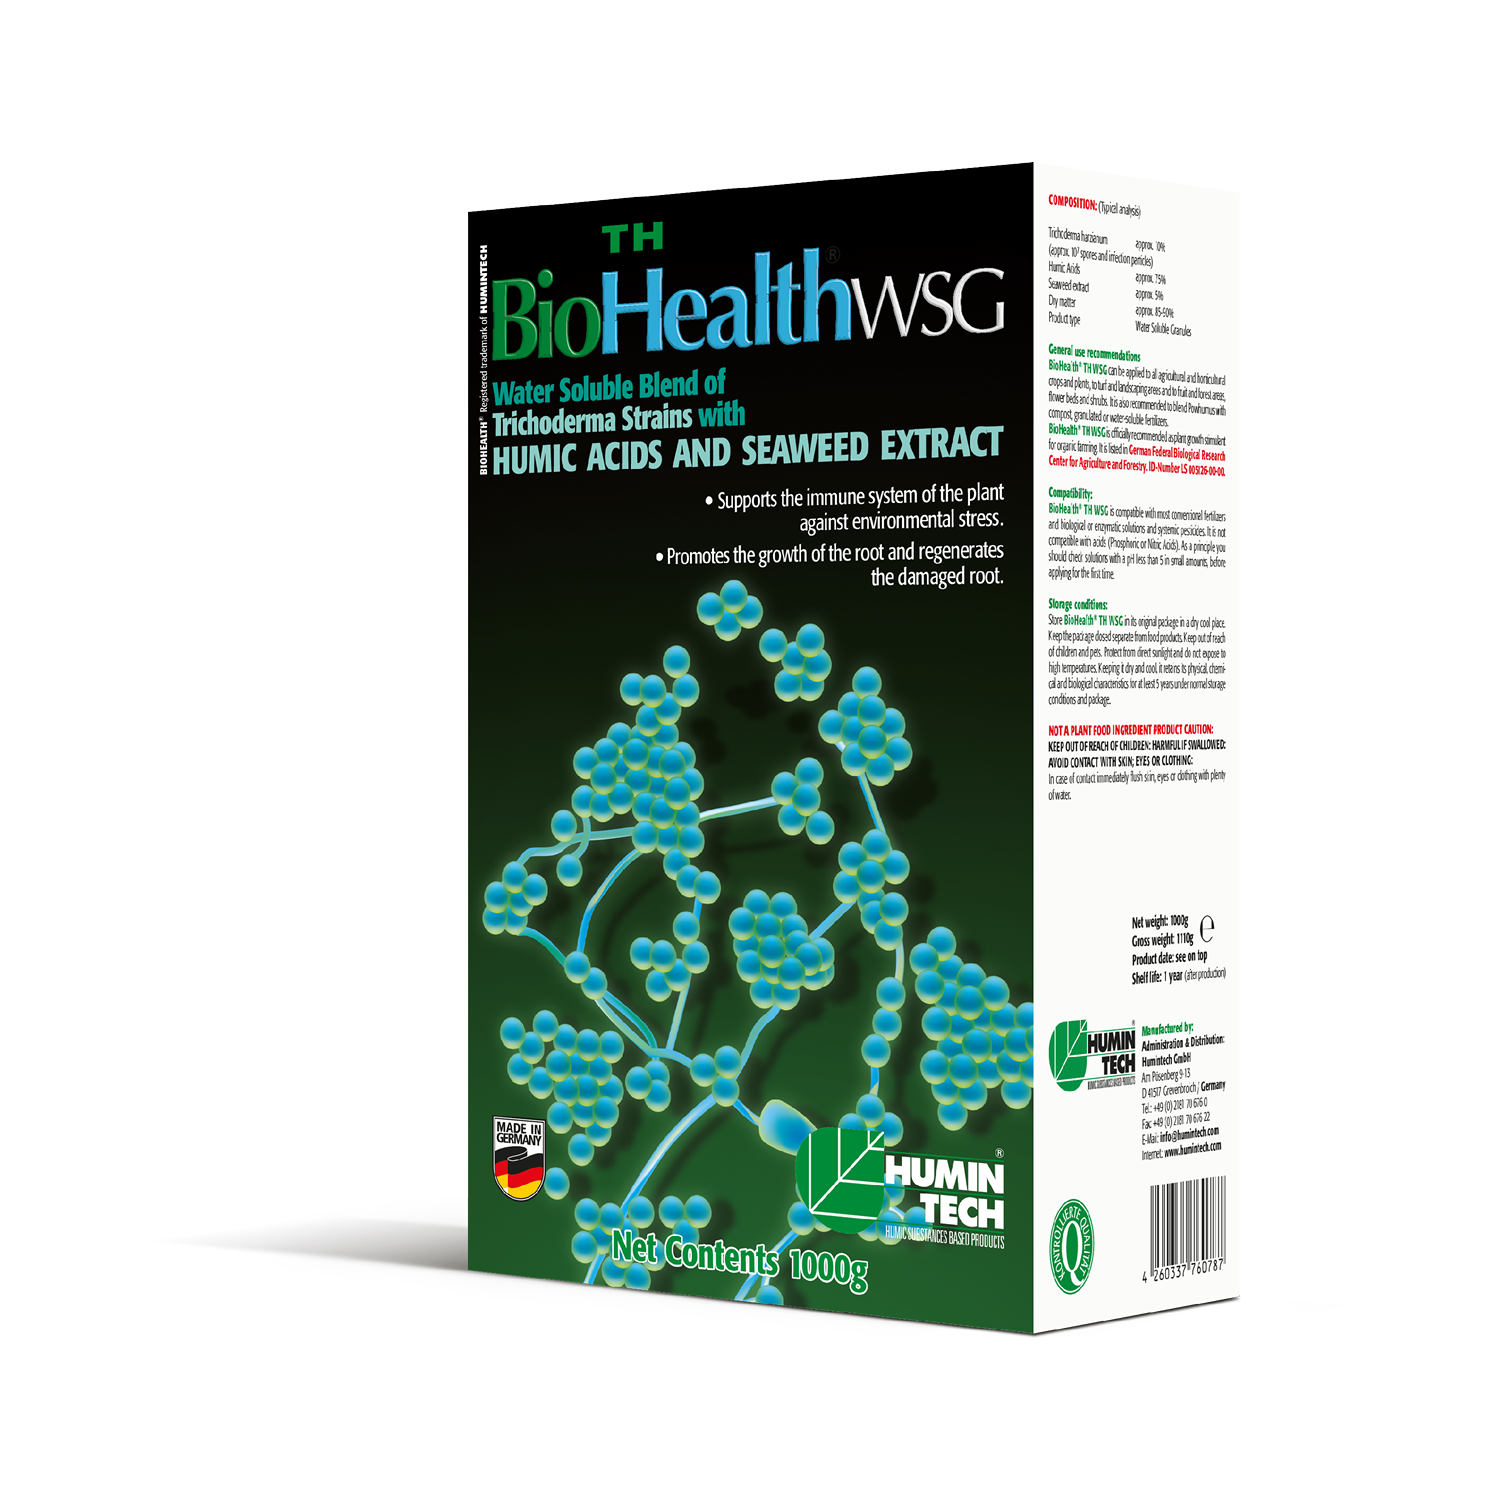 BioHealth TH WSG Water Soluble Blend of Trichoderma strains Humic Acids and Seaweed Extract box